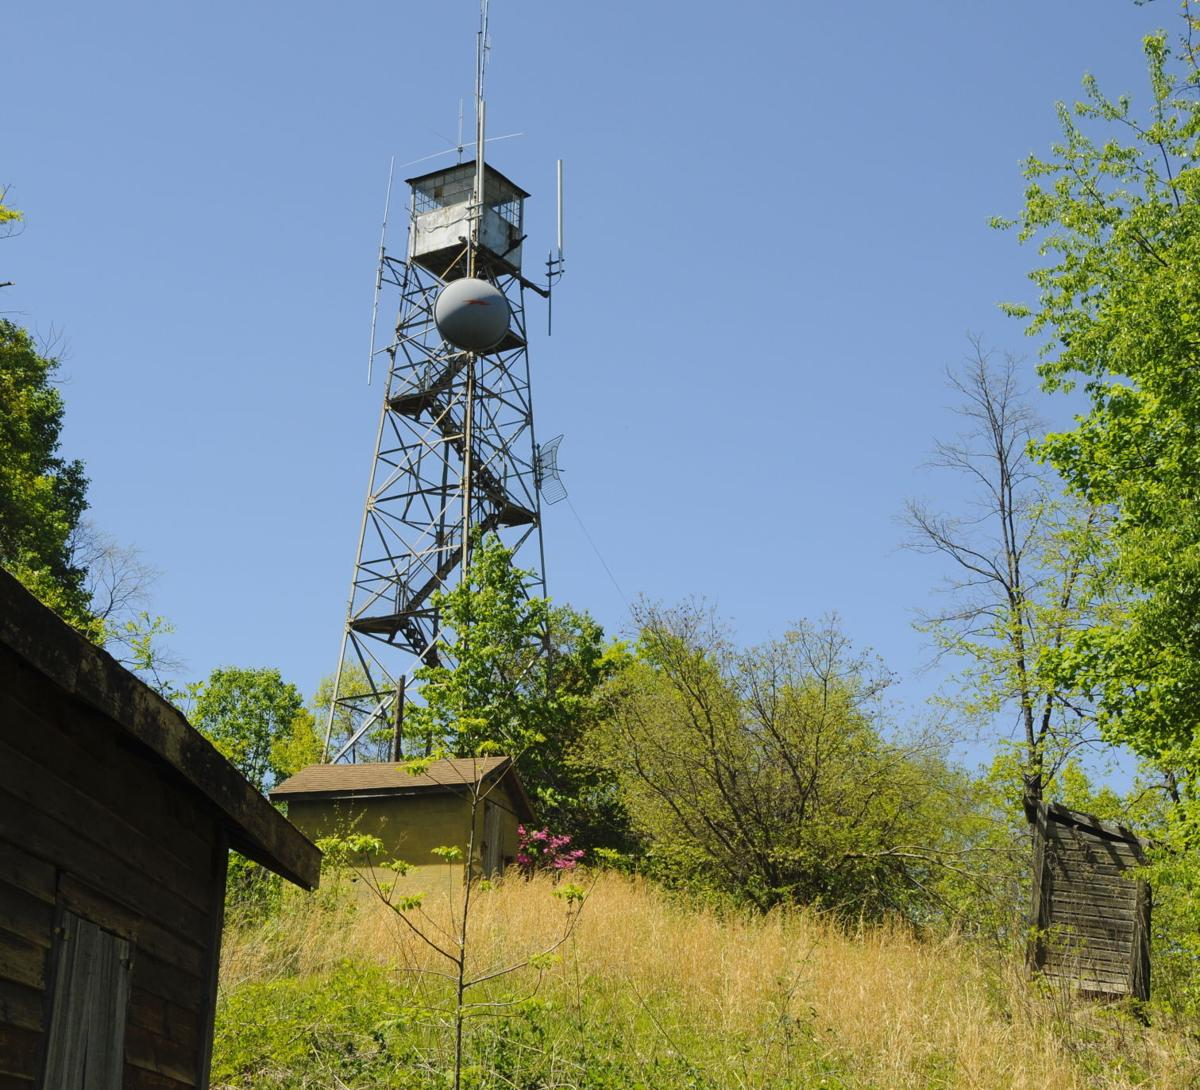 Fire tower on Rendezvous